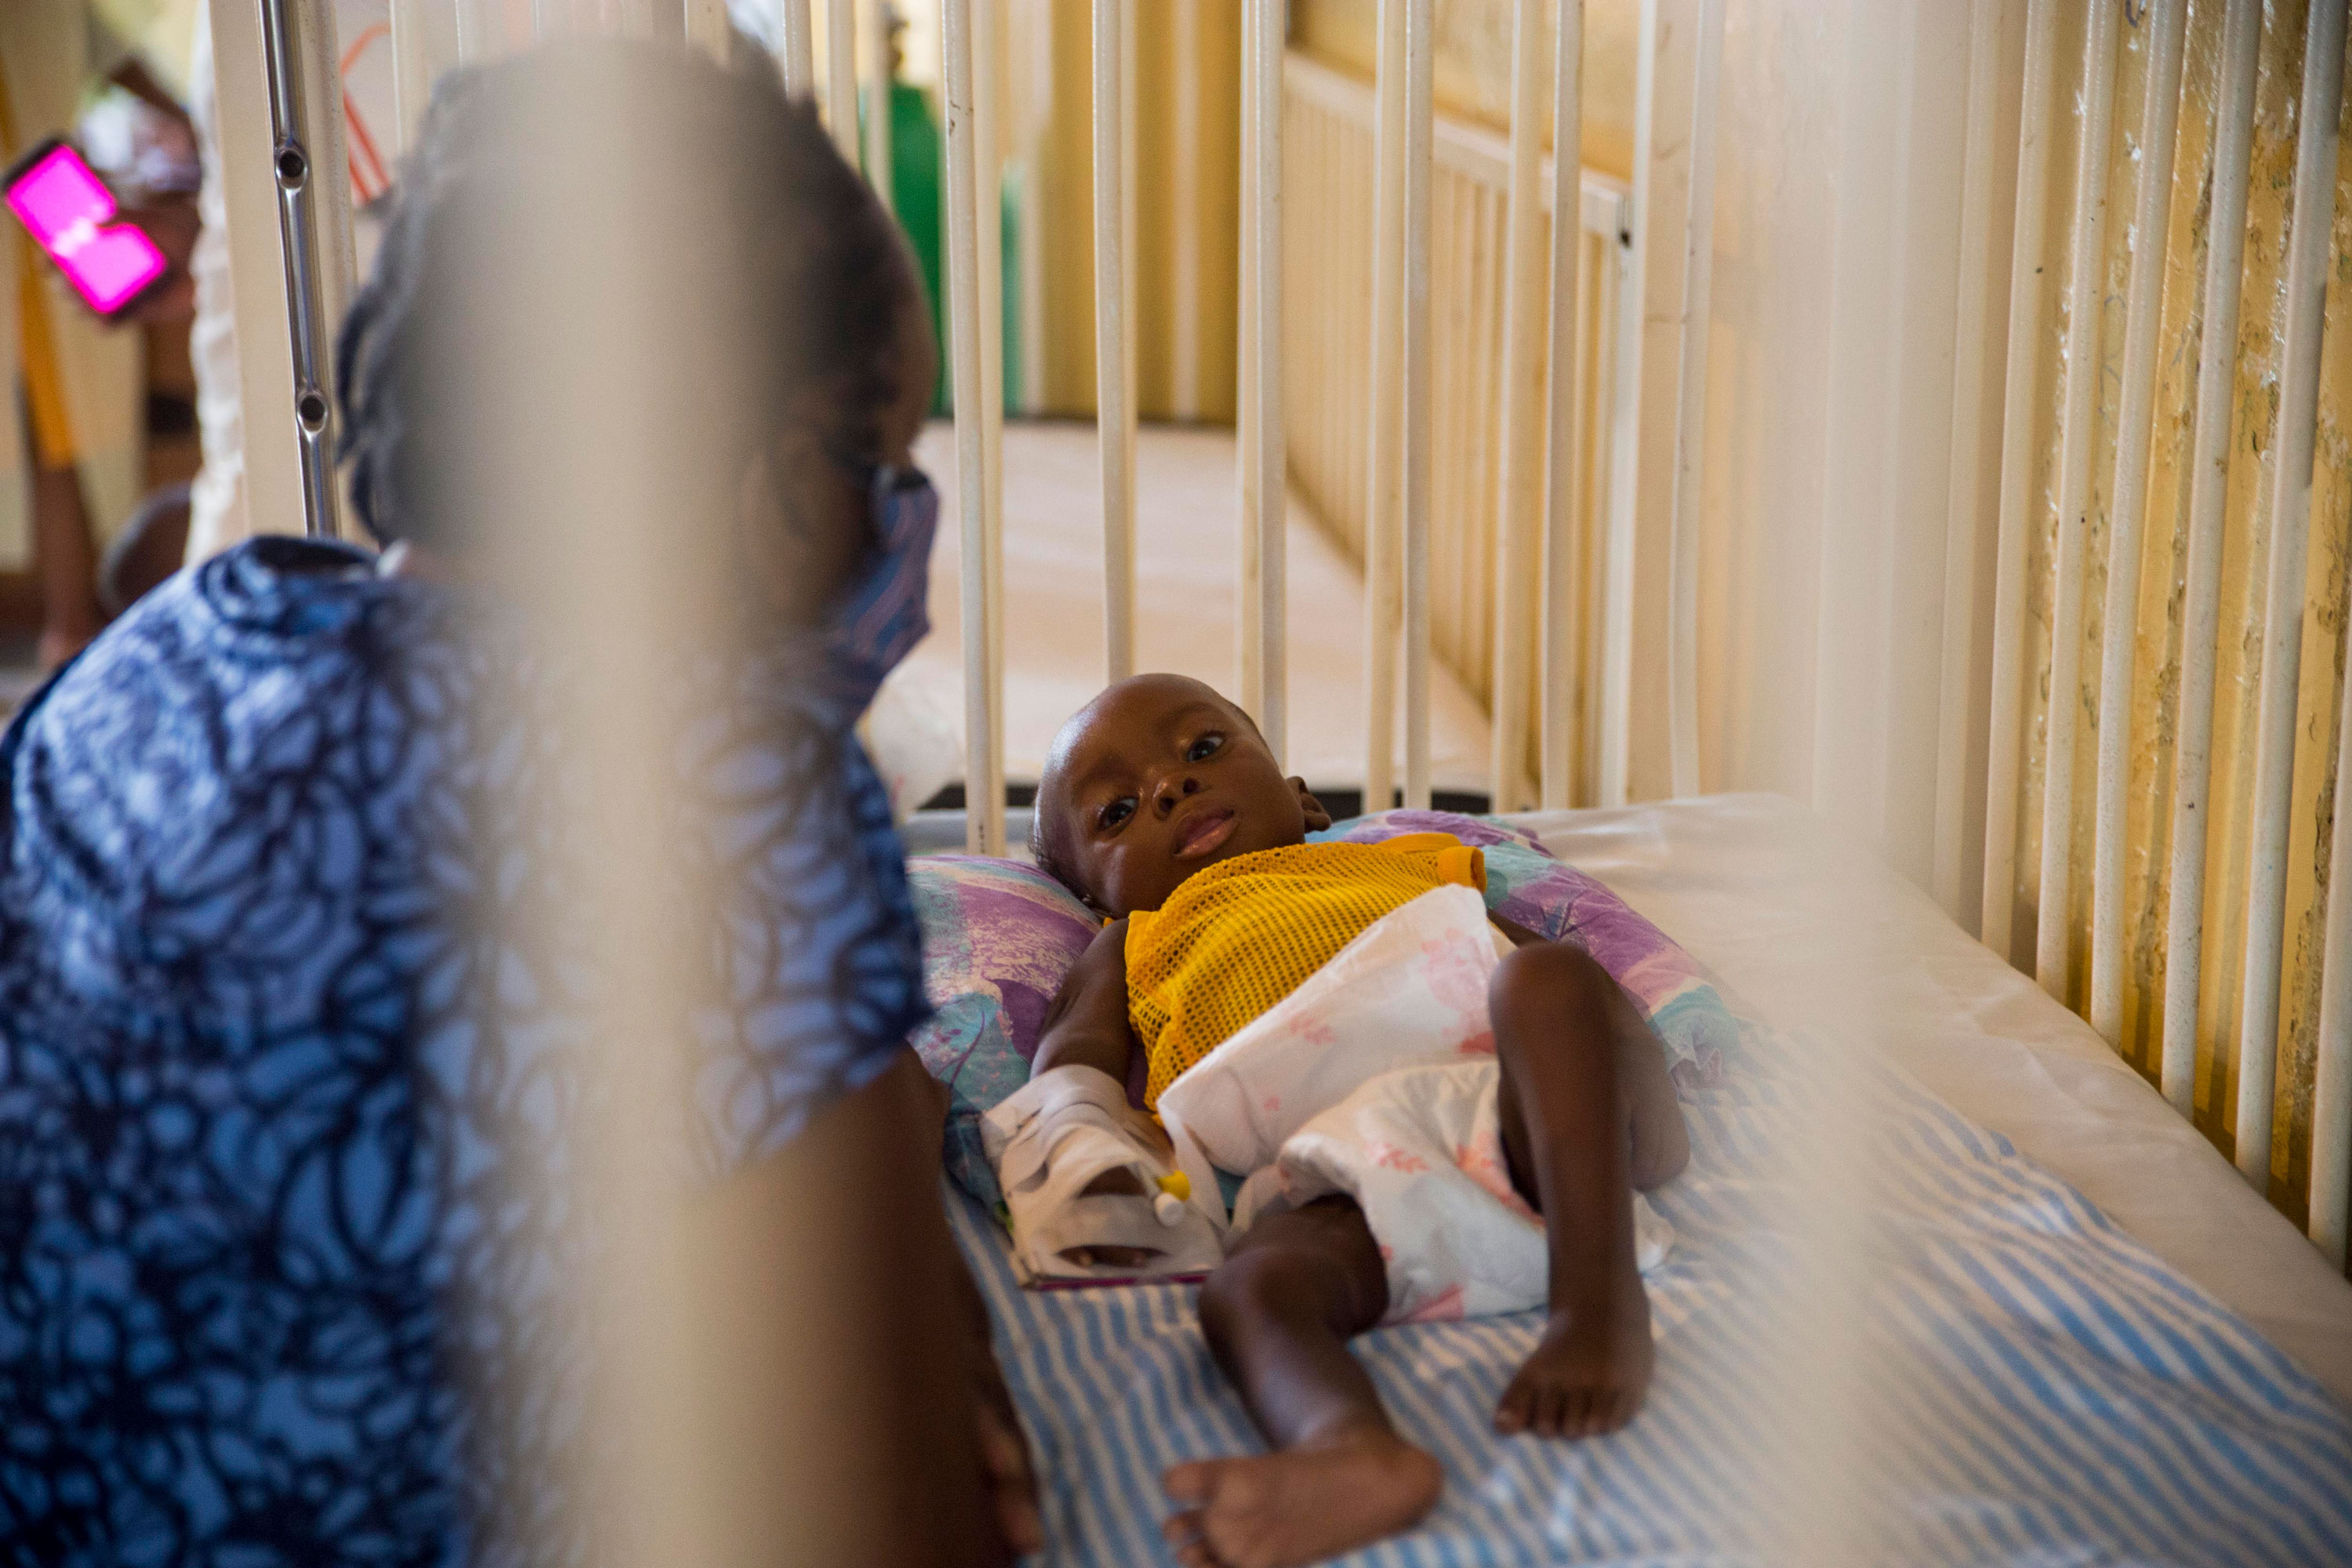 Marie Rose Emile watches over her 6-month-old grandson Jonise as he is treated for malnutrition at the HospitalofImmaculate Conception, in Les Cayes, Haiti, Wednesday, May 26, 2021. UNICEF's regional director for Latin America and the Caribbean visited the southern seaport amid concerns over an increase in malnutrition and a drop in childhood immunizations that officials blame on the coronavirus pandemic. (AP Photo/Joseph Odelyn)